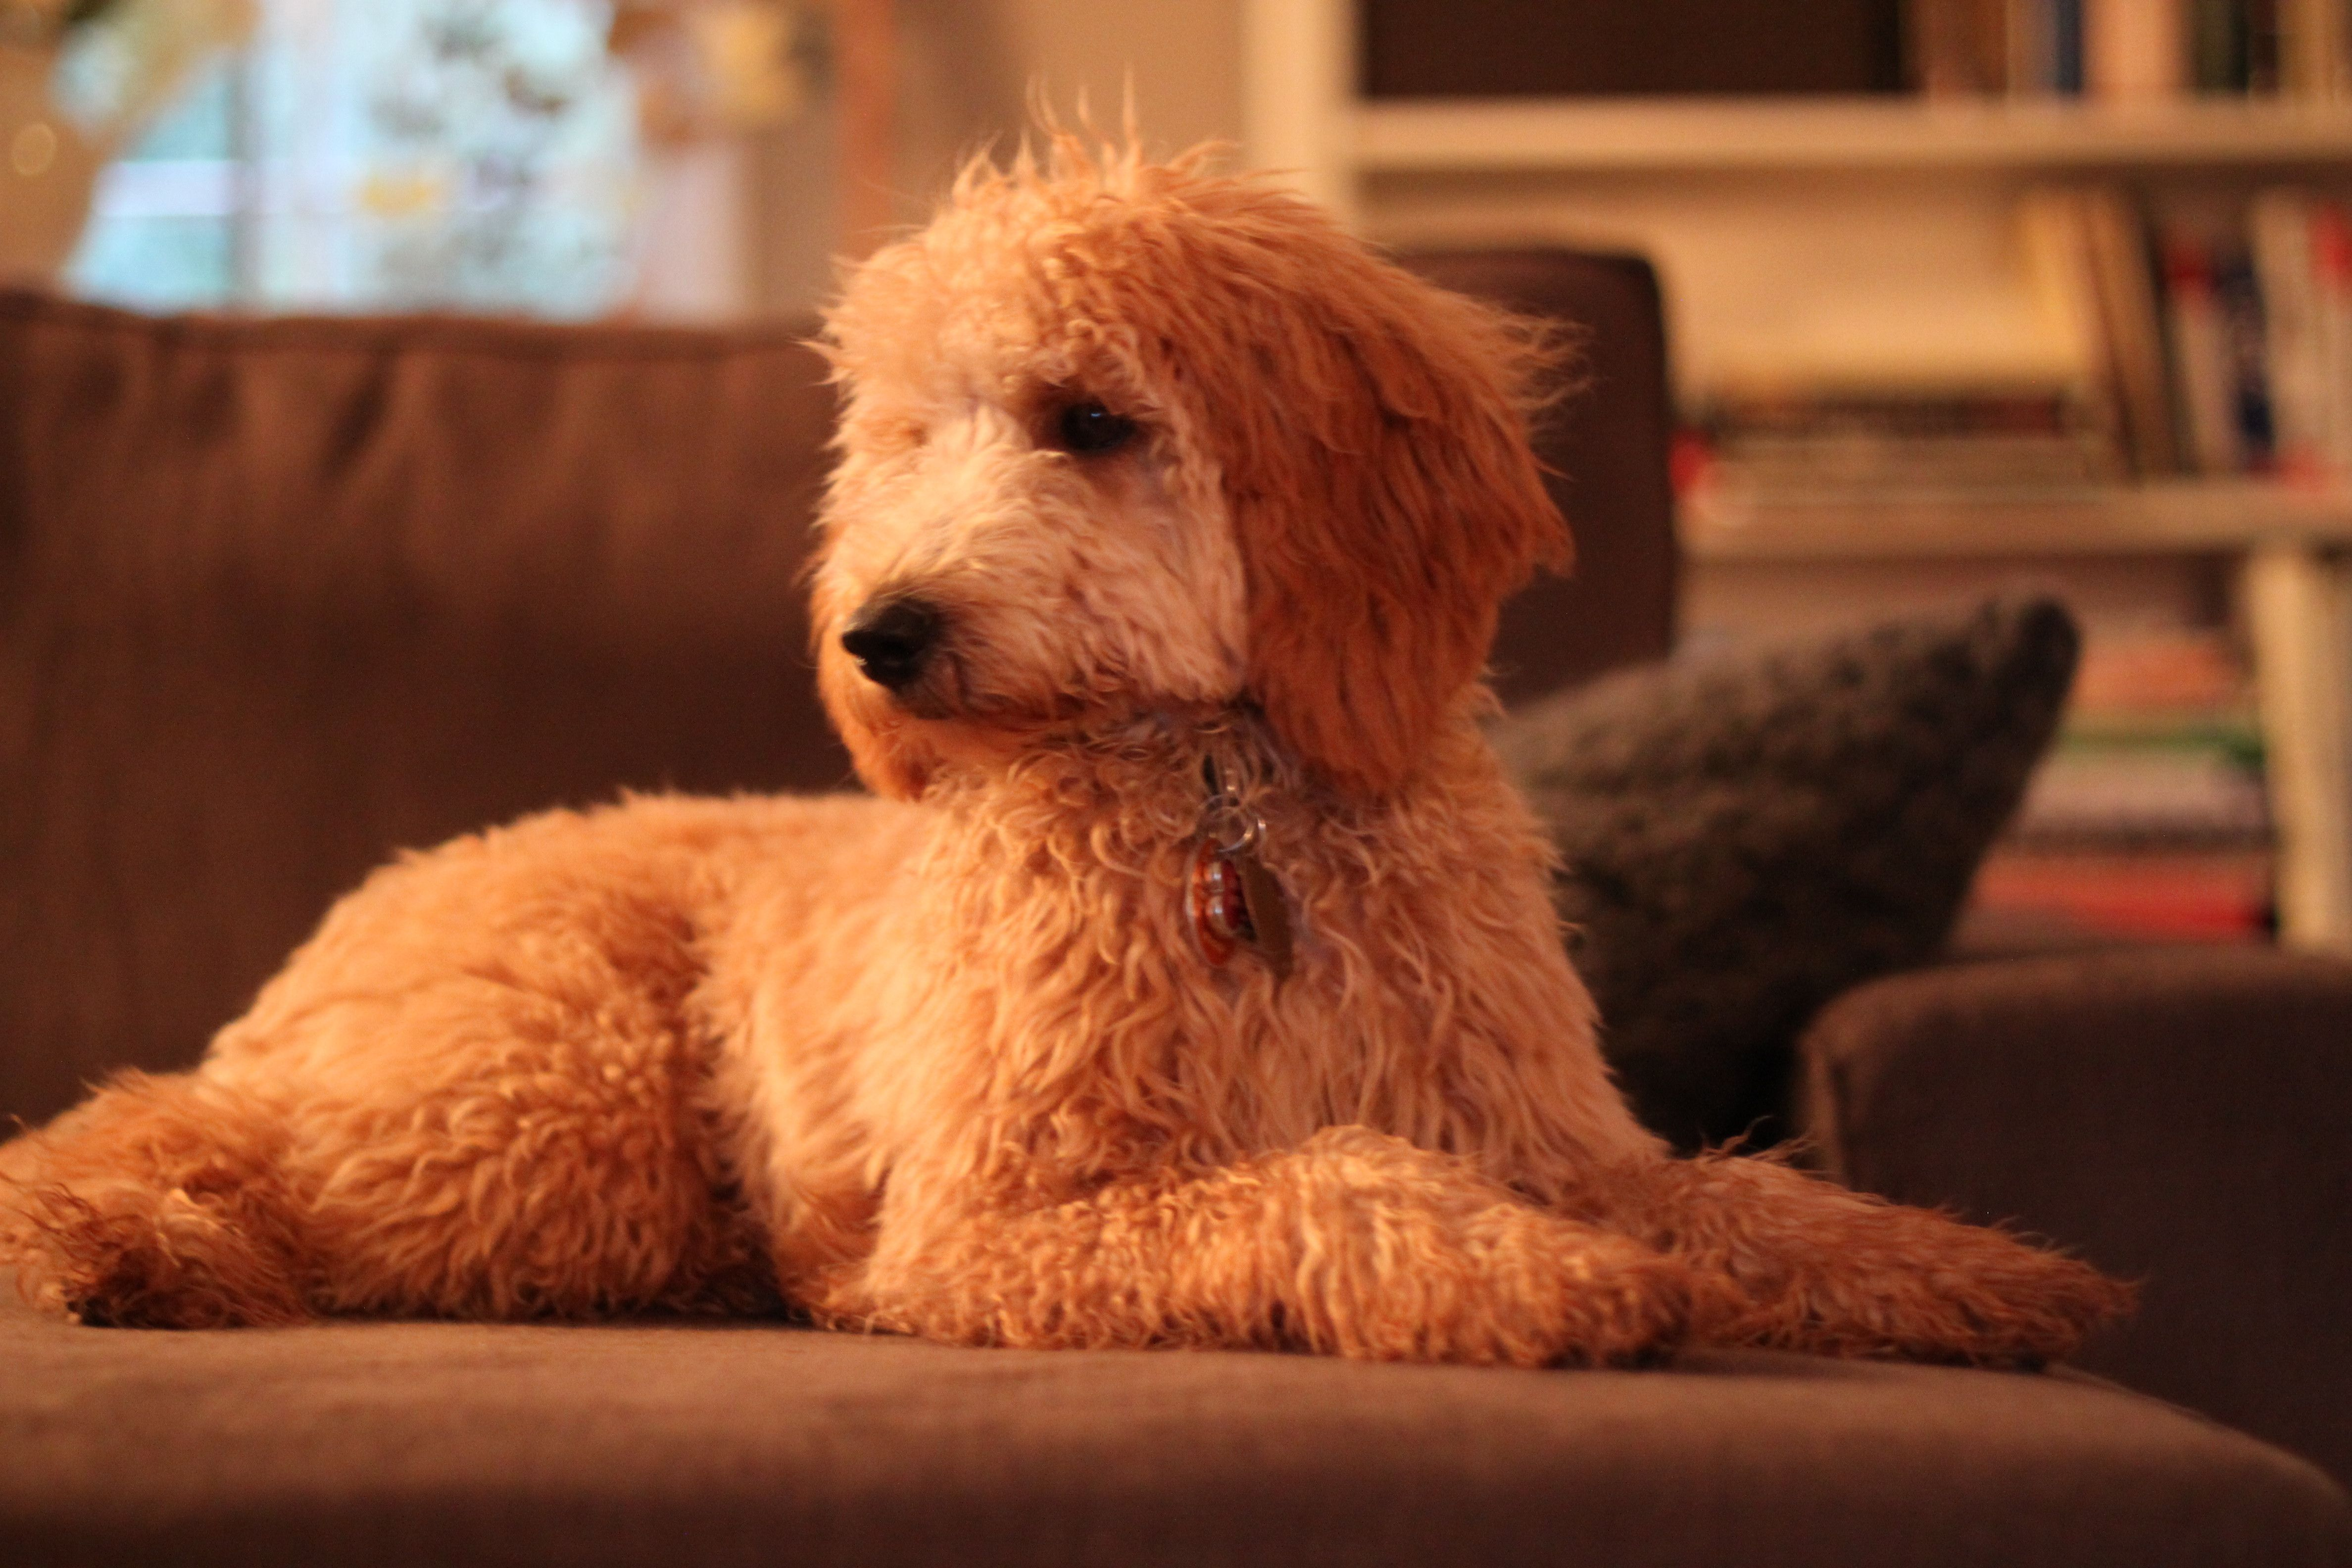 Angel at 8 months old, red apricot Goldendoodle puppy by